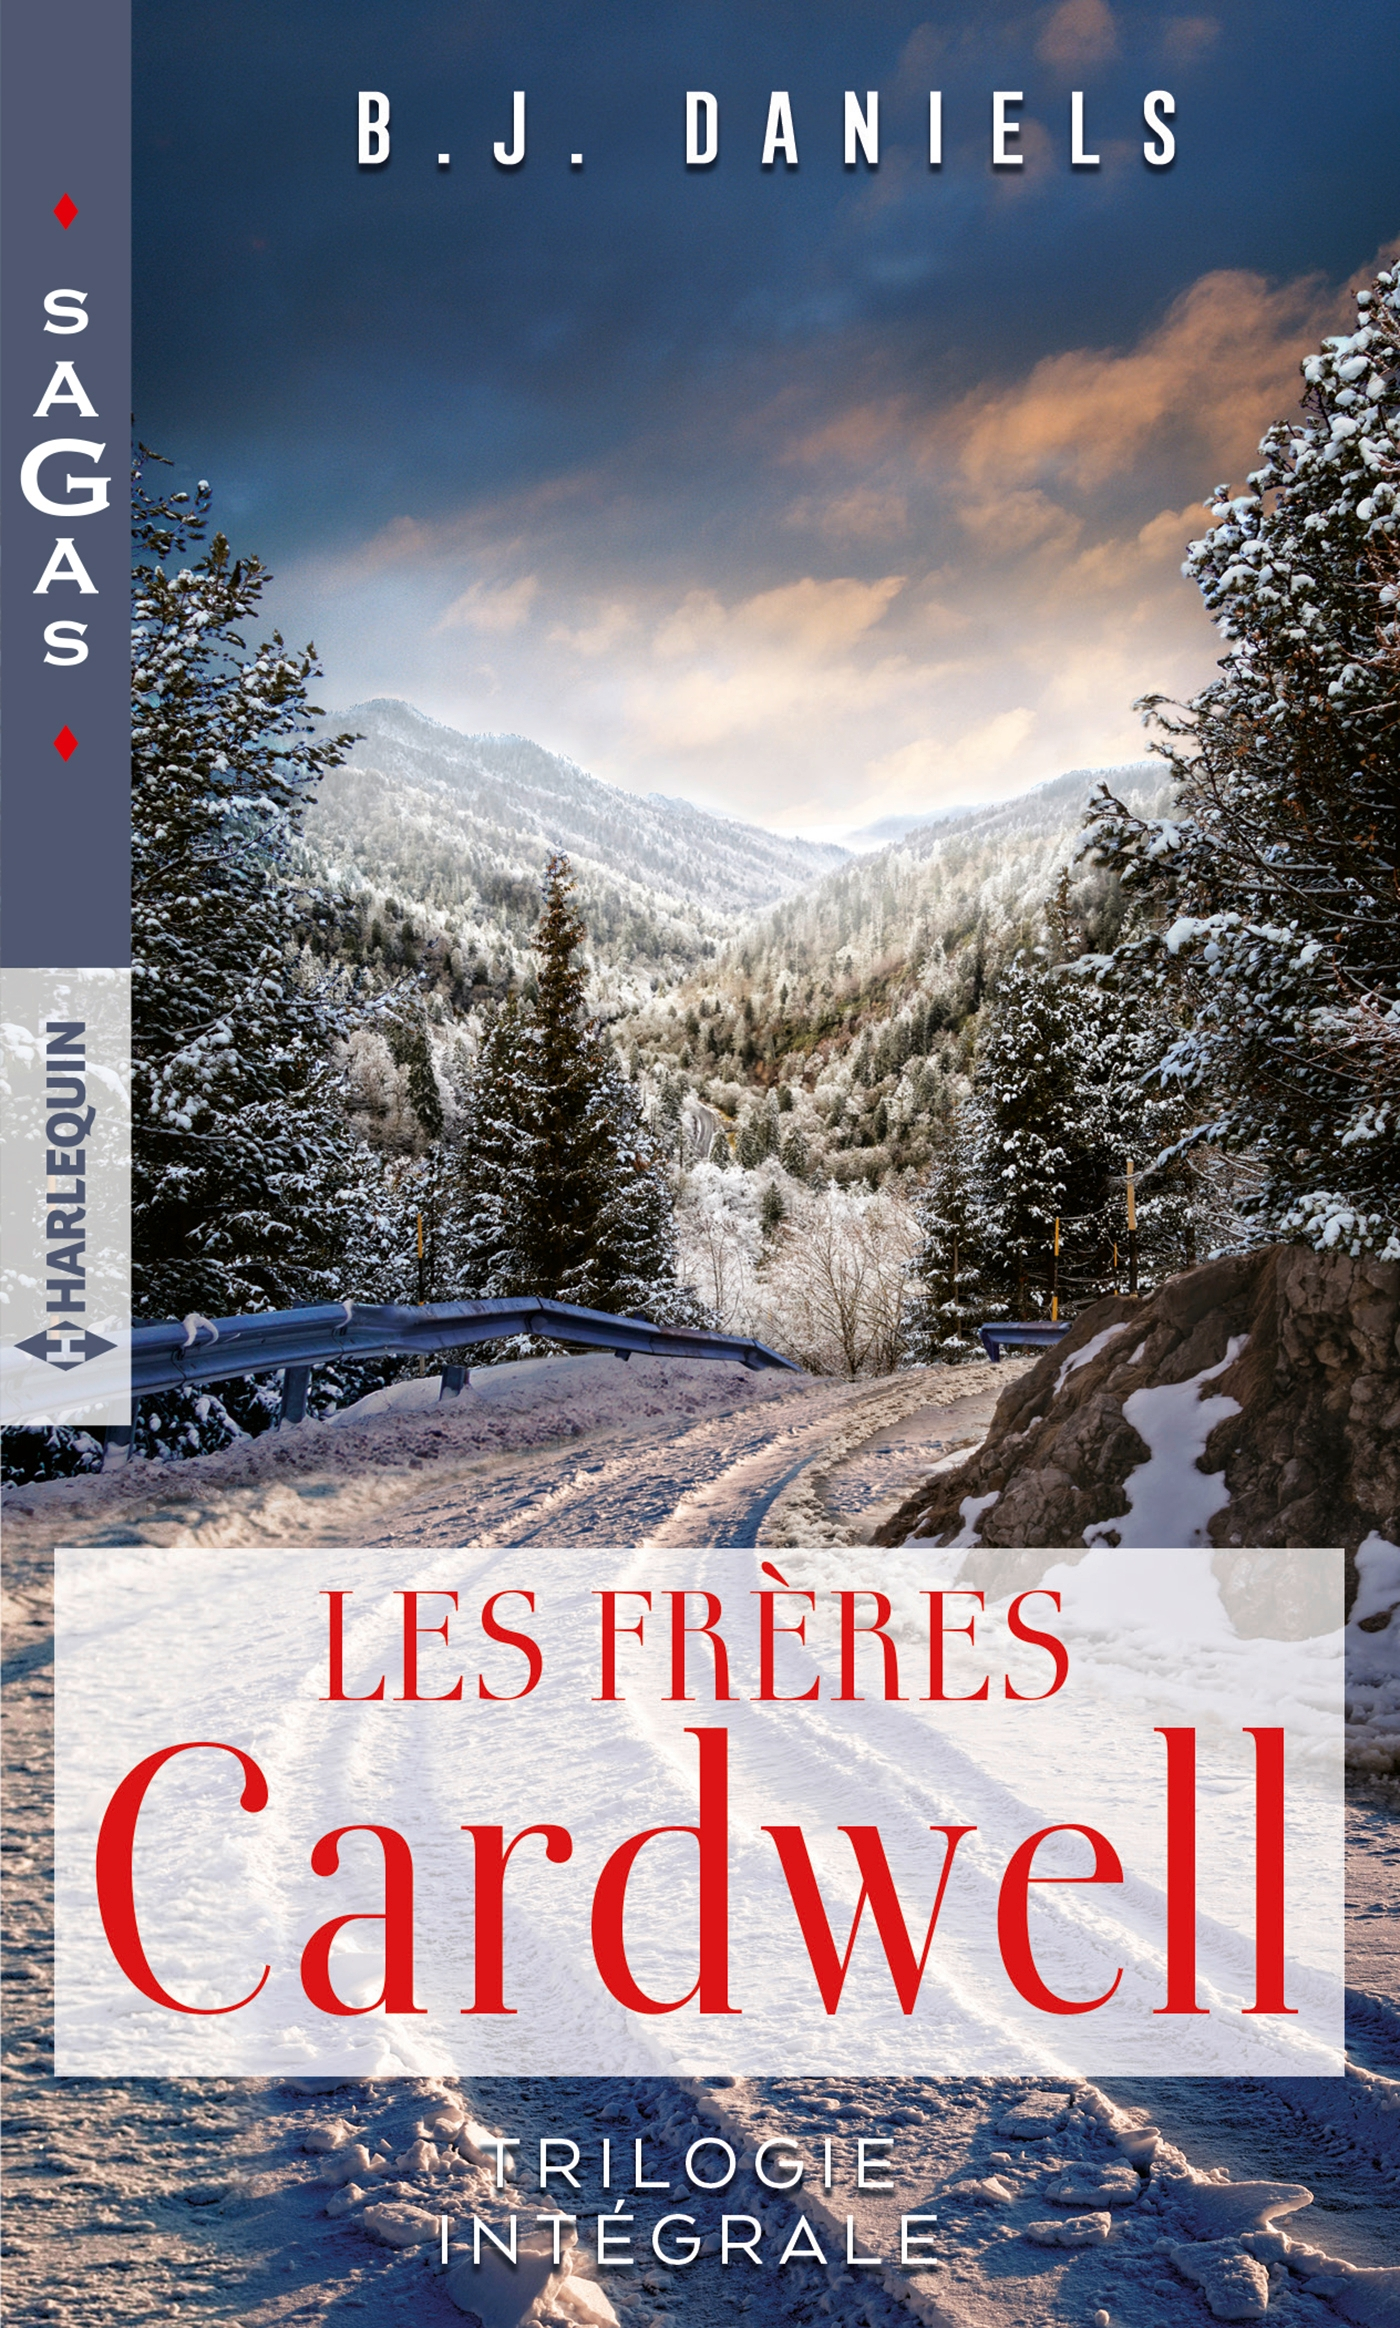 Les frères Cardwell